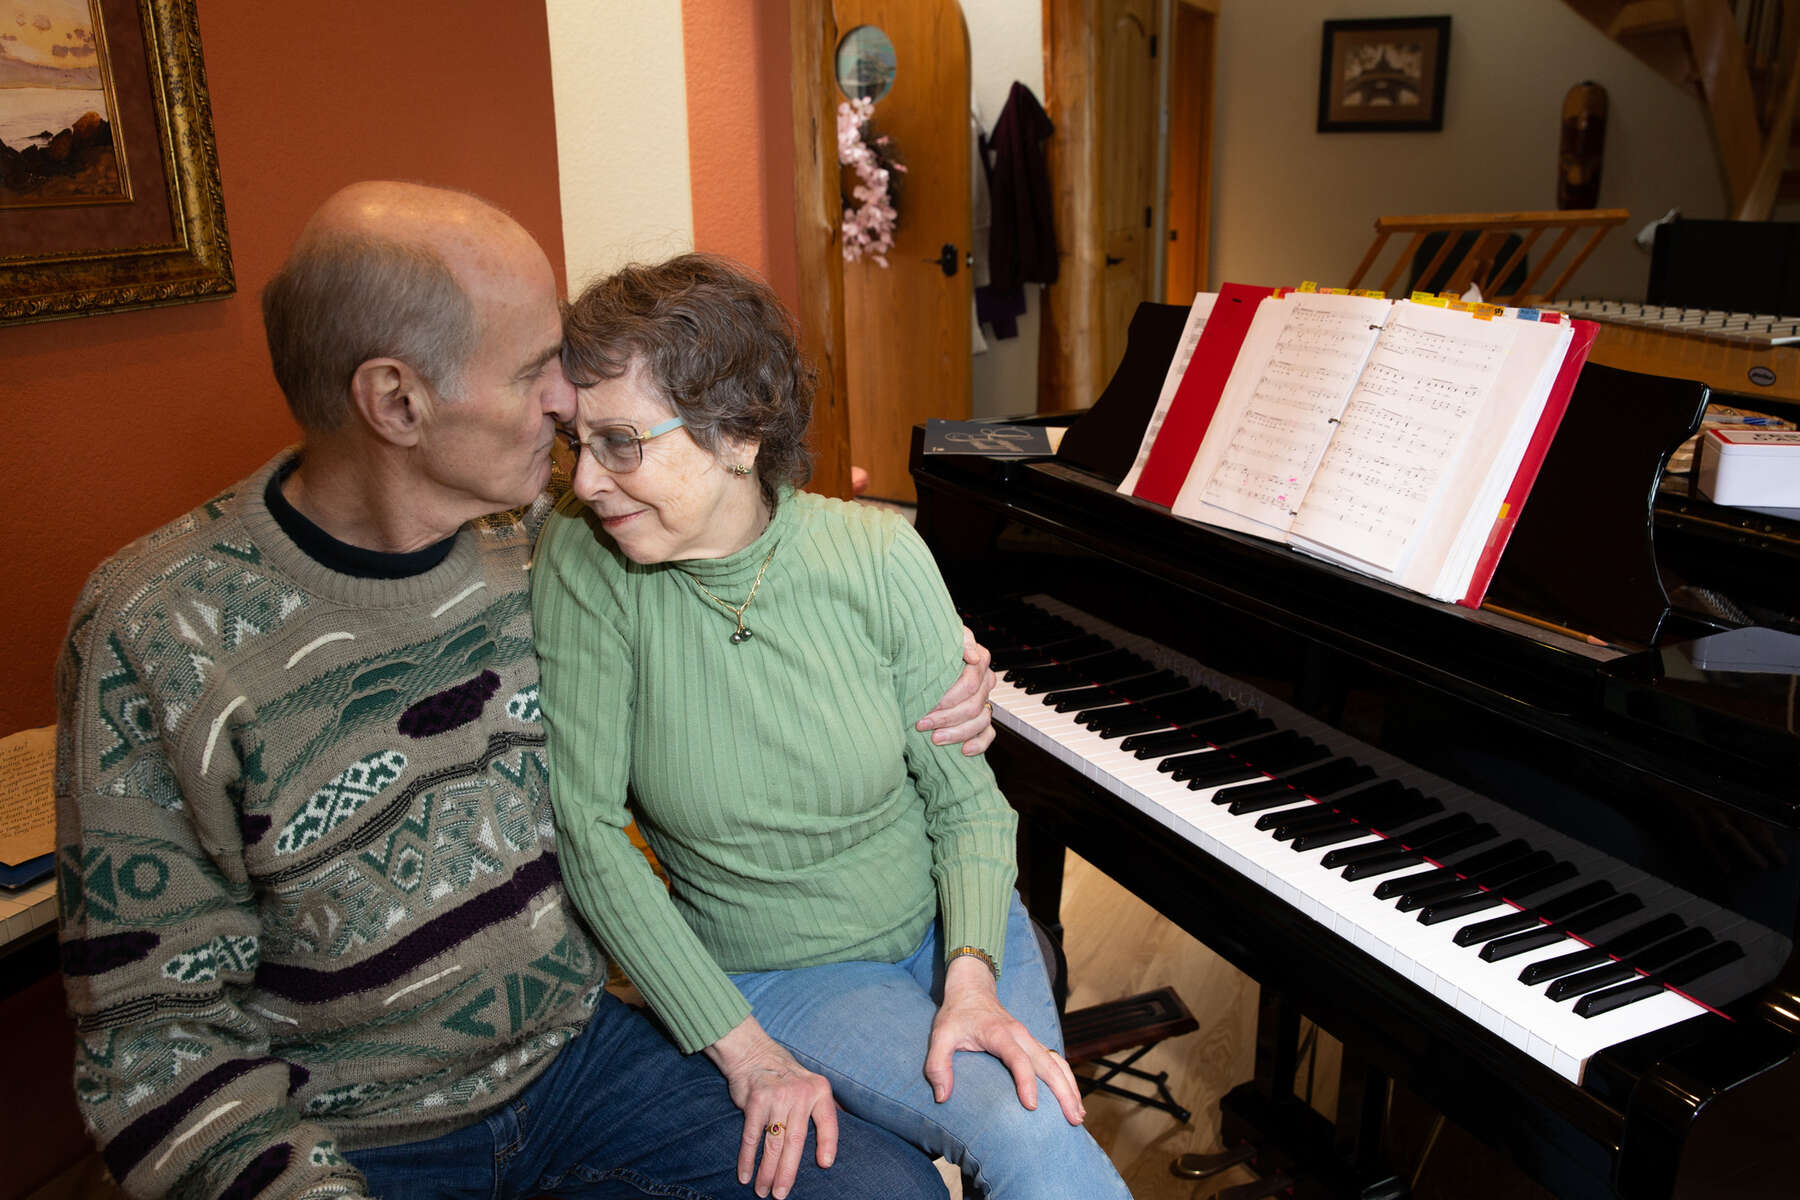 Mark Backlund, 73, gives his wife, Ruth Backlund, 72, a kiss as the two recover from the coronavirus (COVID-19) at their home in Anacortes, Washington on March 27, 2020. Both of them are singers in the Skagit Valley Chorale that experienced a huge uptick in members getting the coronavirus after a rehearsal at a church in Mount Vernon, Washinton on March 10. 27 tested positive for COVID-19. Two have died. The outbreak in a rural community shows how contagious coronavirus is, and how quickly it can spread. (photo by Karen Ducey for the LA Times)